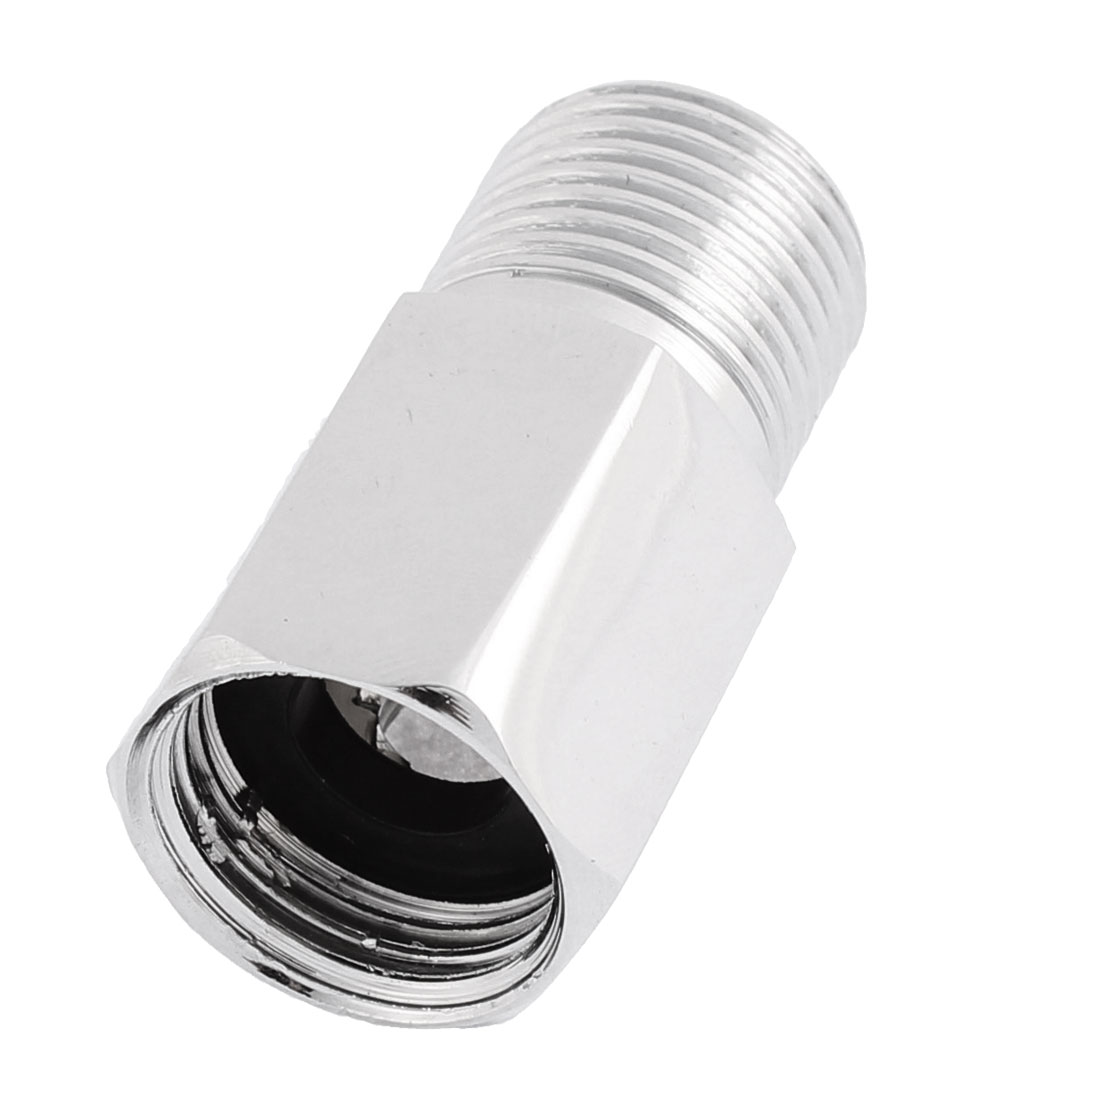 1/2 BSP Male to 1/2 BSP Female Thread Metal Hex Bushing Reducer Fitting Coupler - image 1 of 2